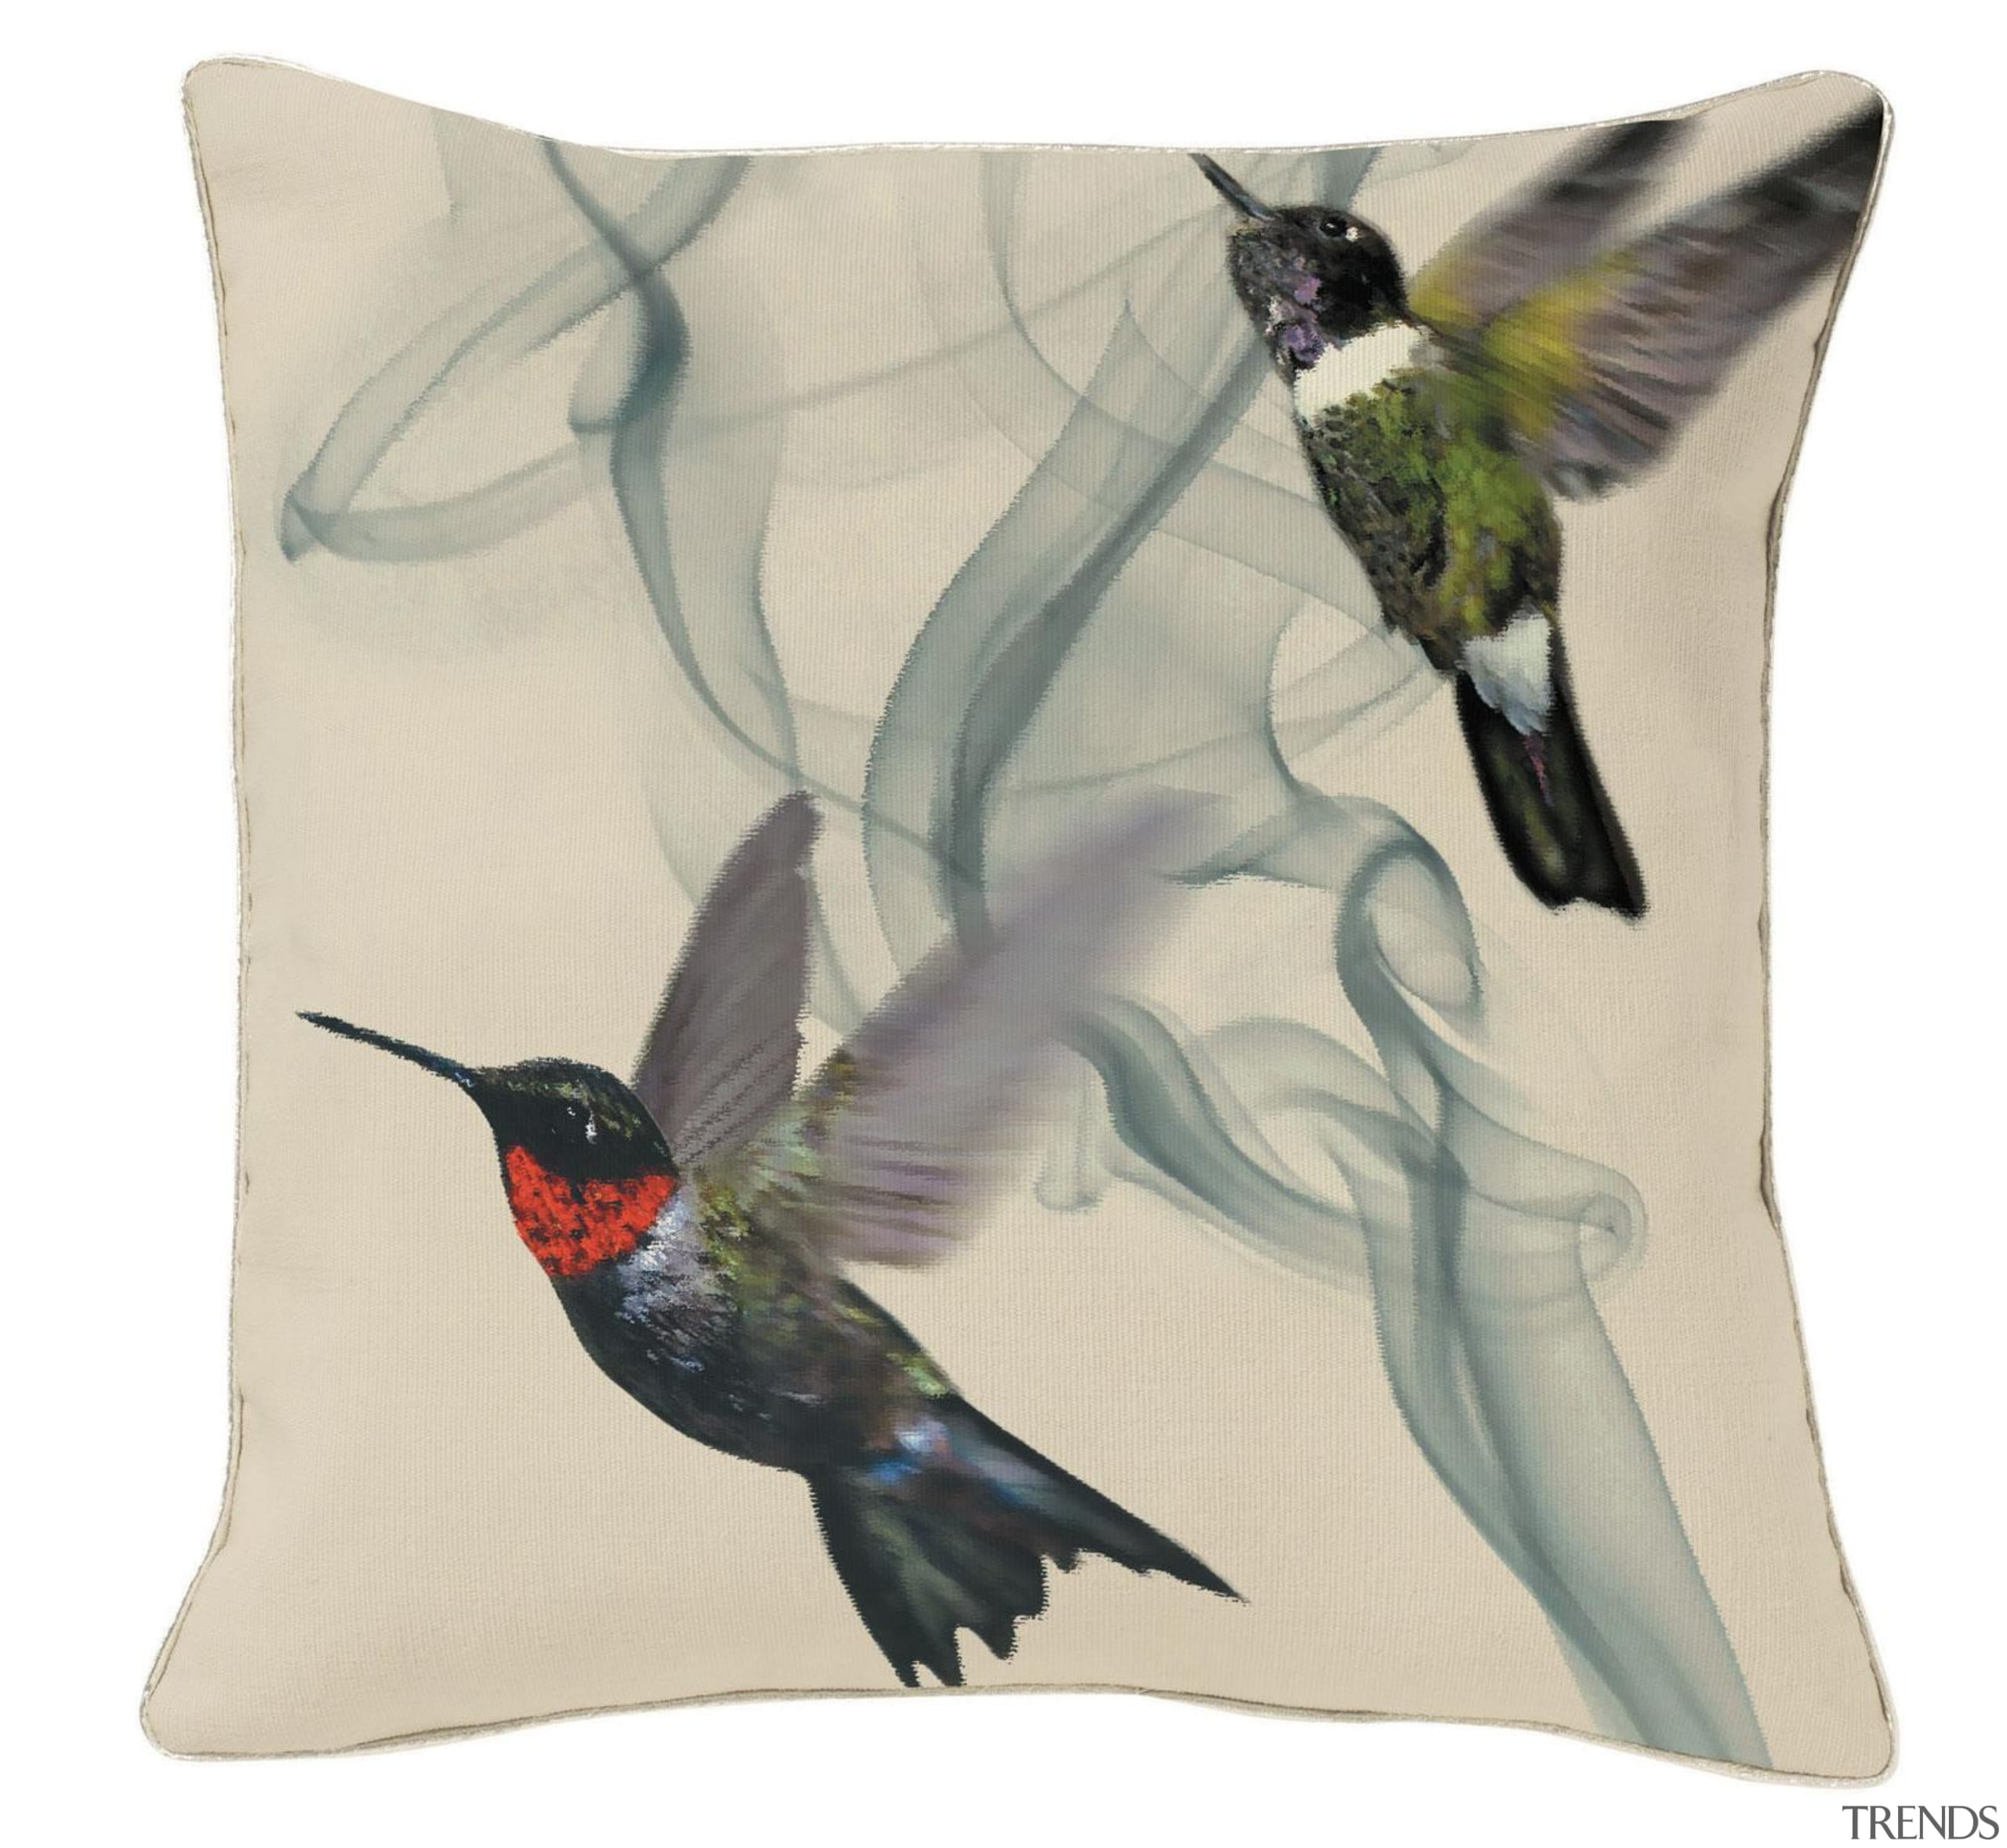 A special edition of the Hummingbird cushion.Jewel-like iridescent beak, bird, fauna, feather, hummingbird, white